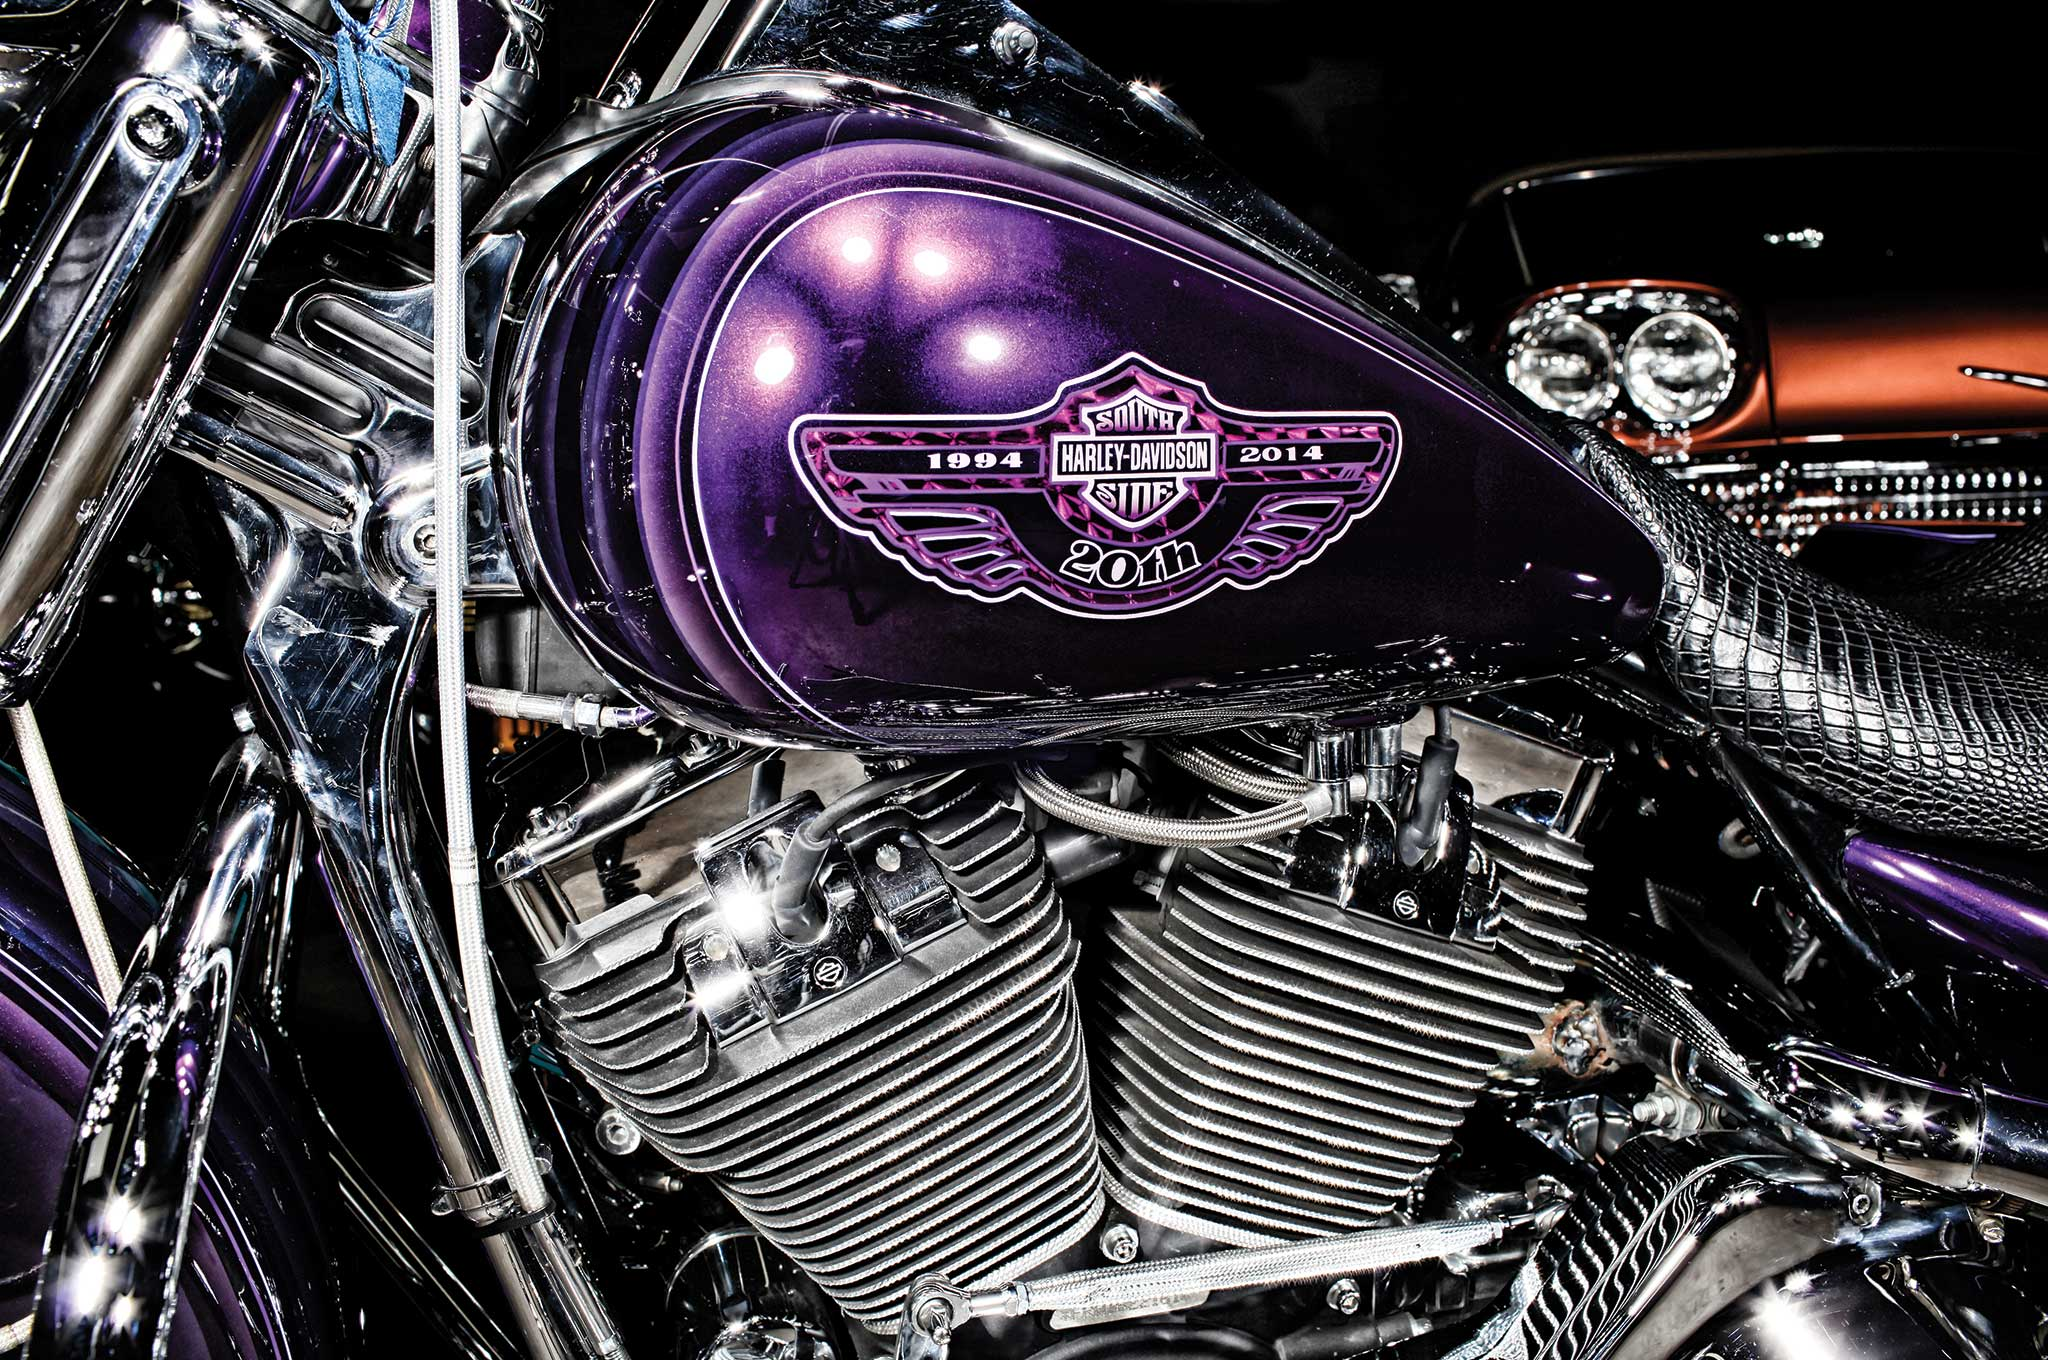 2001-harley-davidson-road-king-radiator